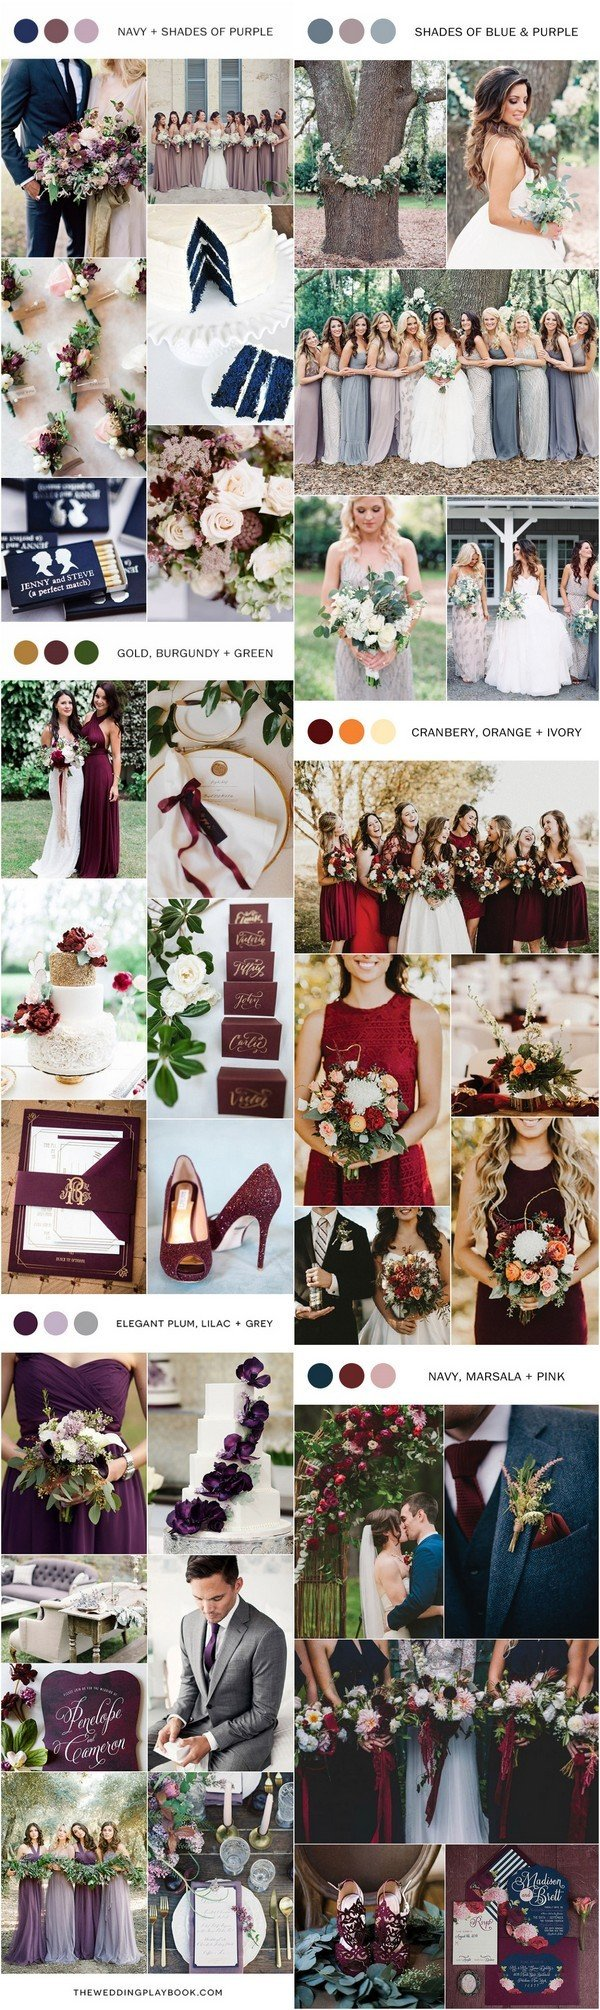 70+ Amazing Fall Wedding Ideas for 2020 - Oh Best Day Ever